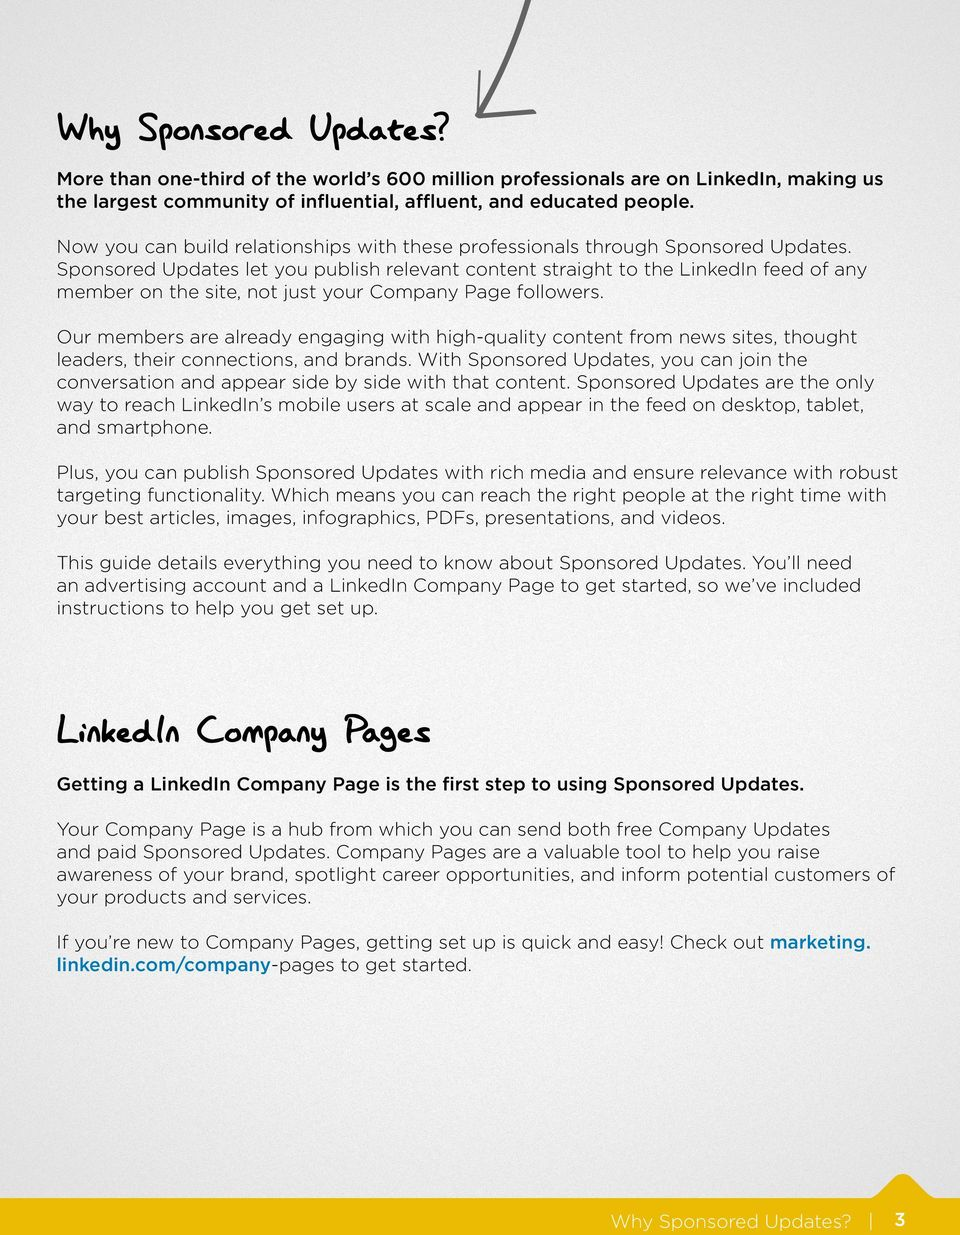 Sponsored Updates let you publish relevant content straight to the LinkedIn feed of any member on the site, not just your Company Page followers.